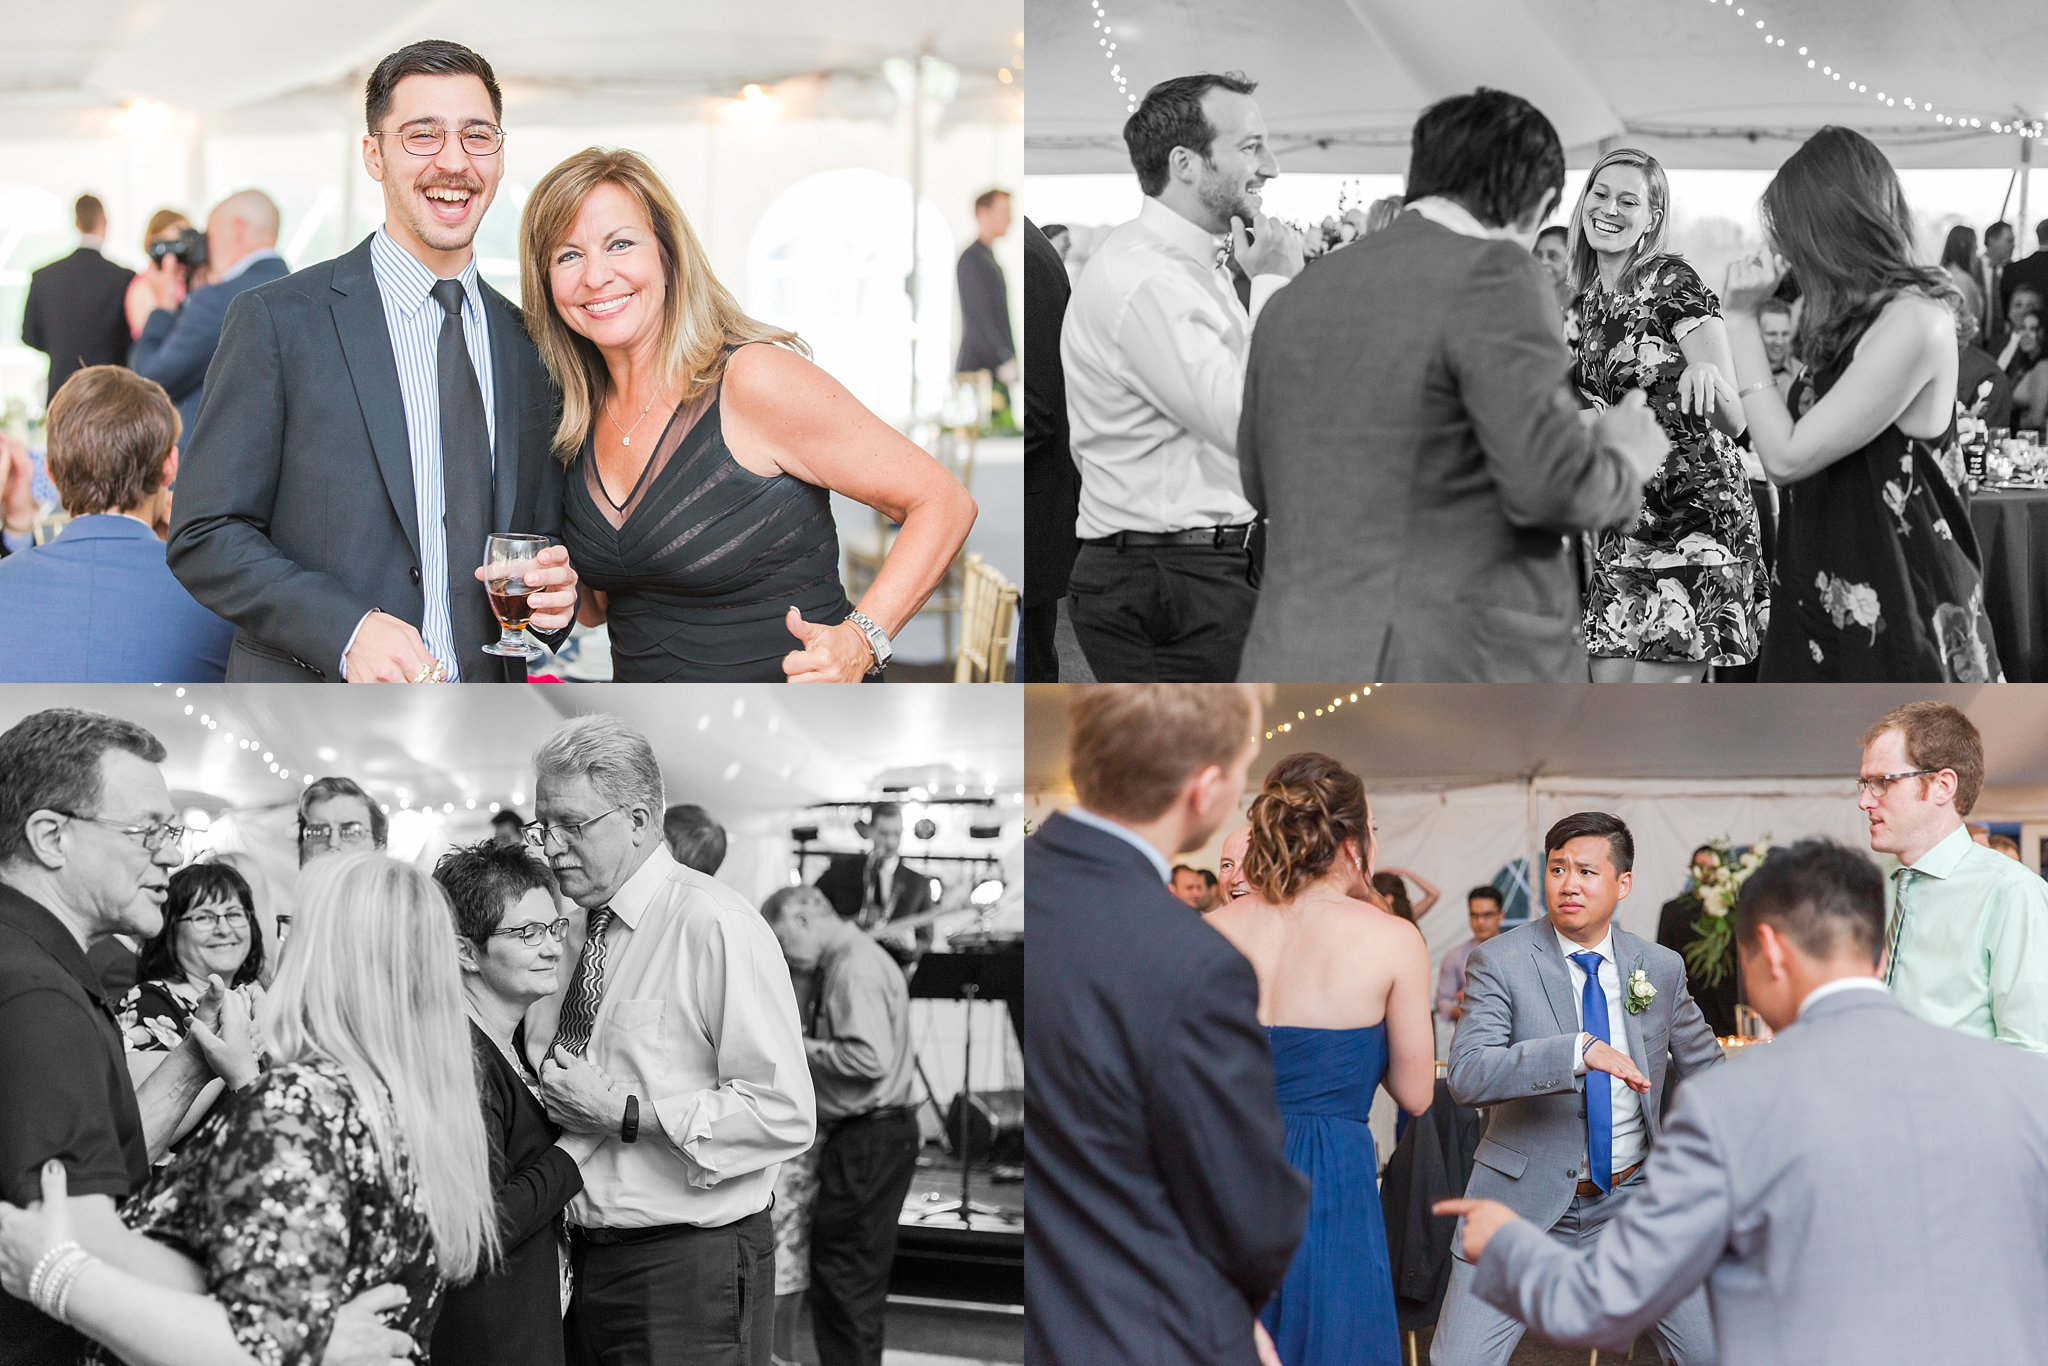 joyful-candid-laid-back-wedding-photos-in-ann-arbor-michigan-and-at-the-eagle-crest-golf-resort-by-courtney-carolyn-photography_0123.jpg